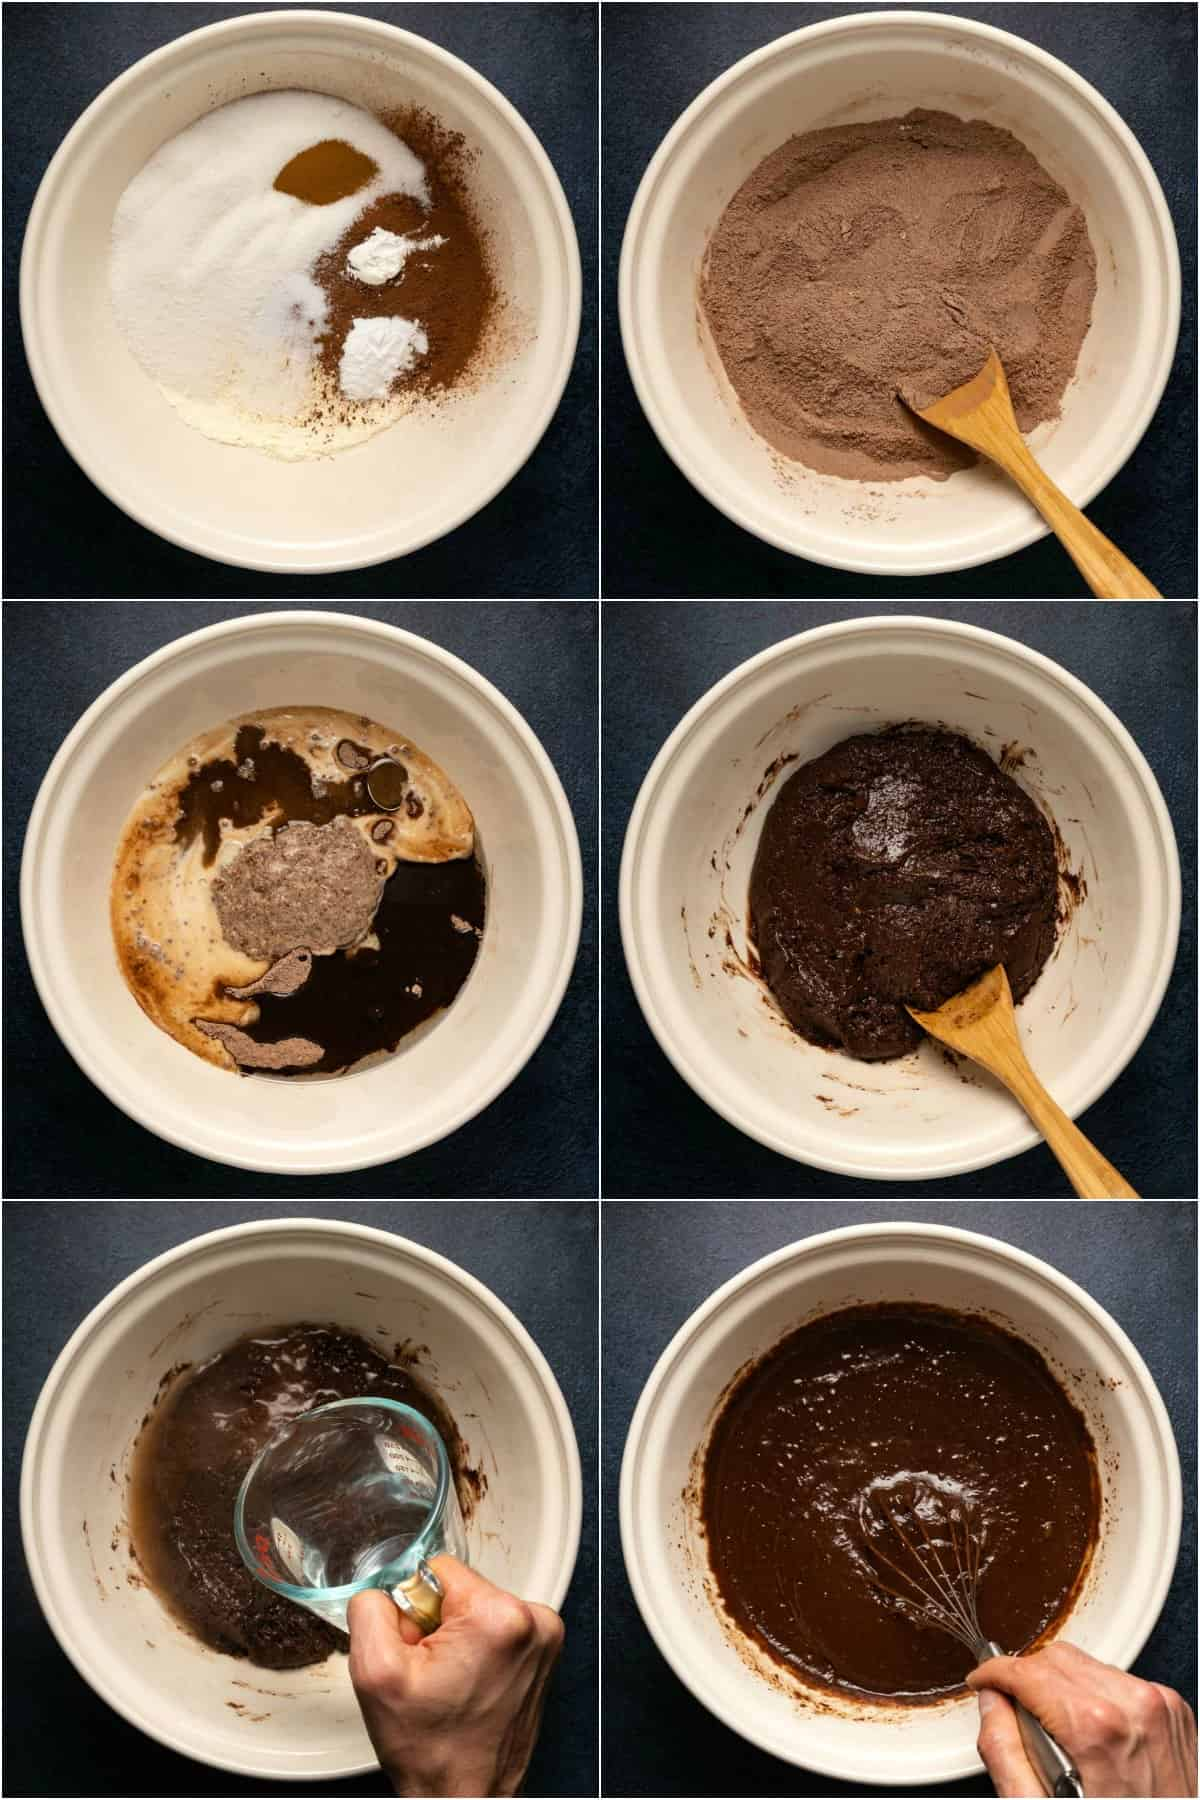 Step by step process photo collage of making the batter for a vegan gluten free chocolate cake.